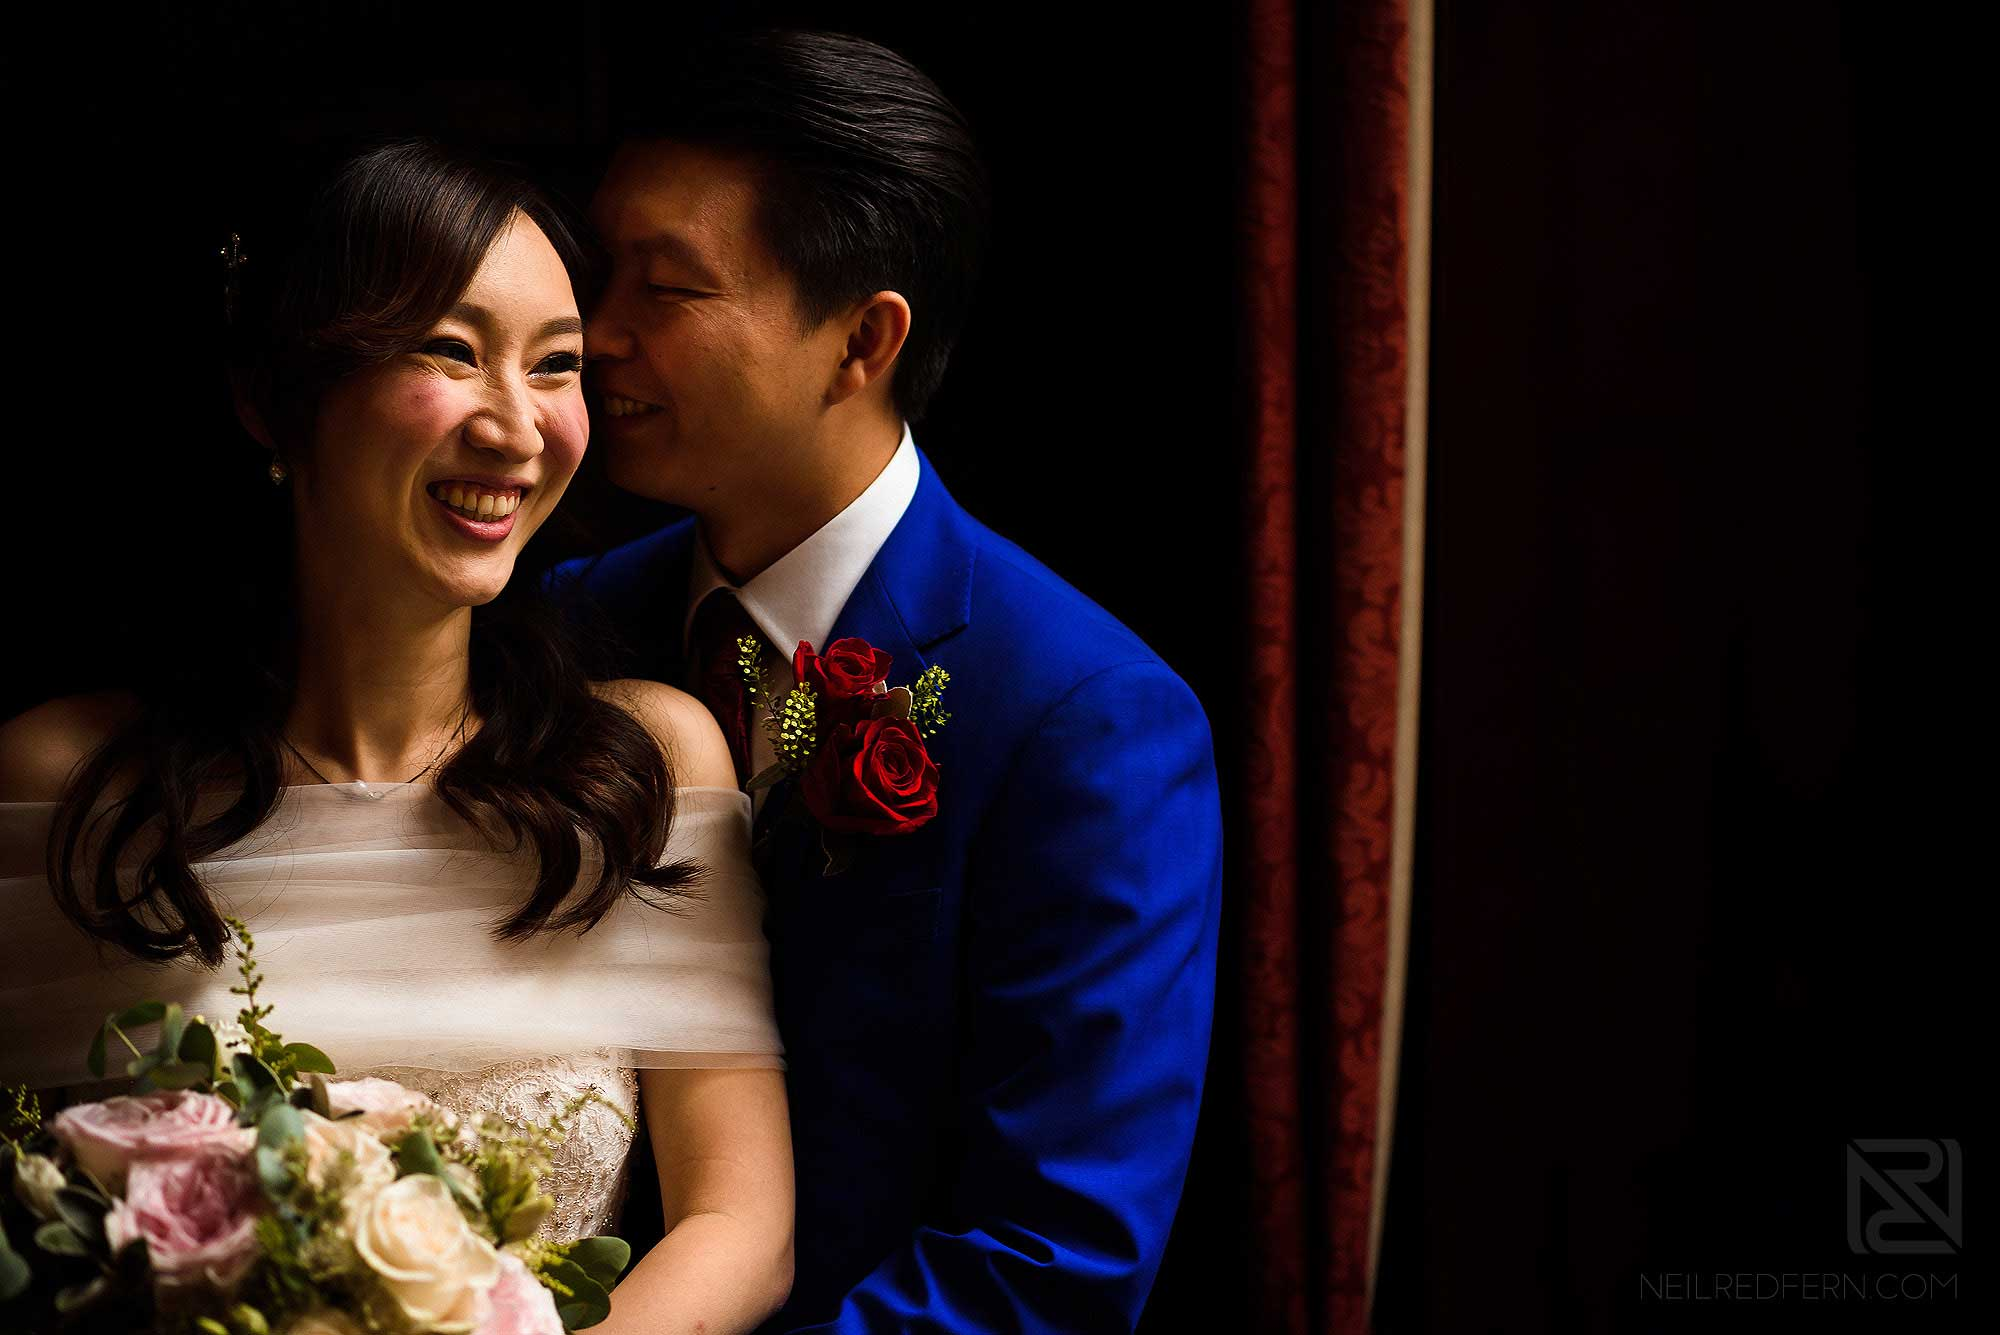 close up photograph of bride and groom together